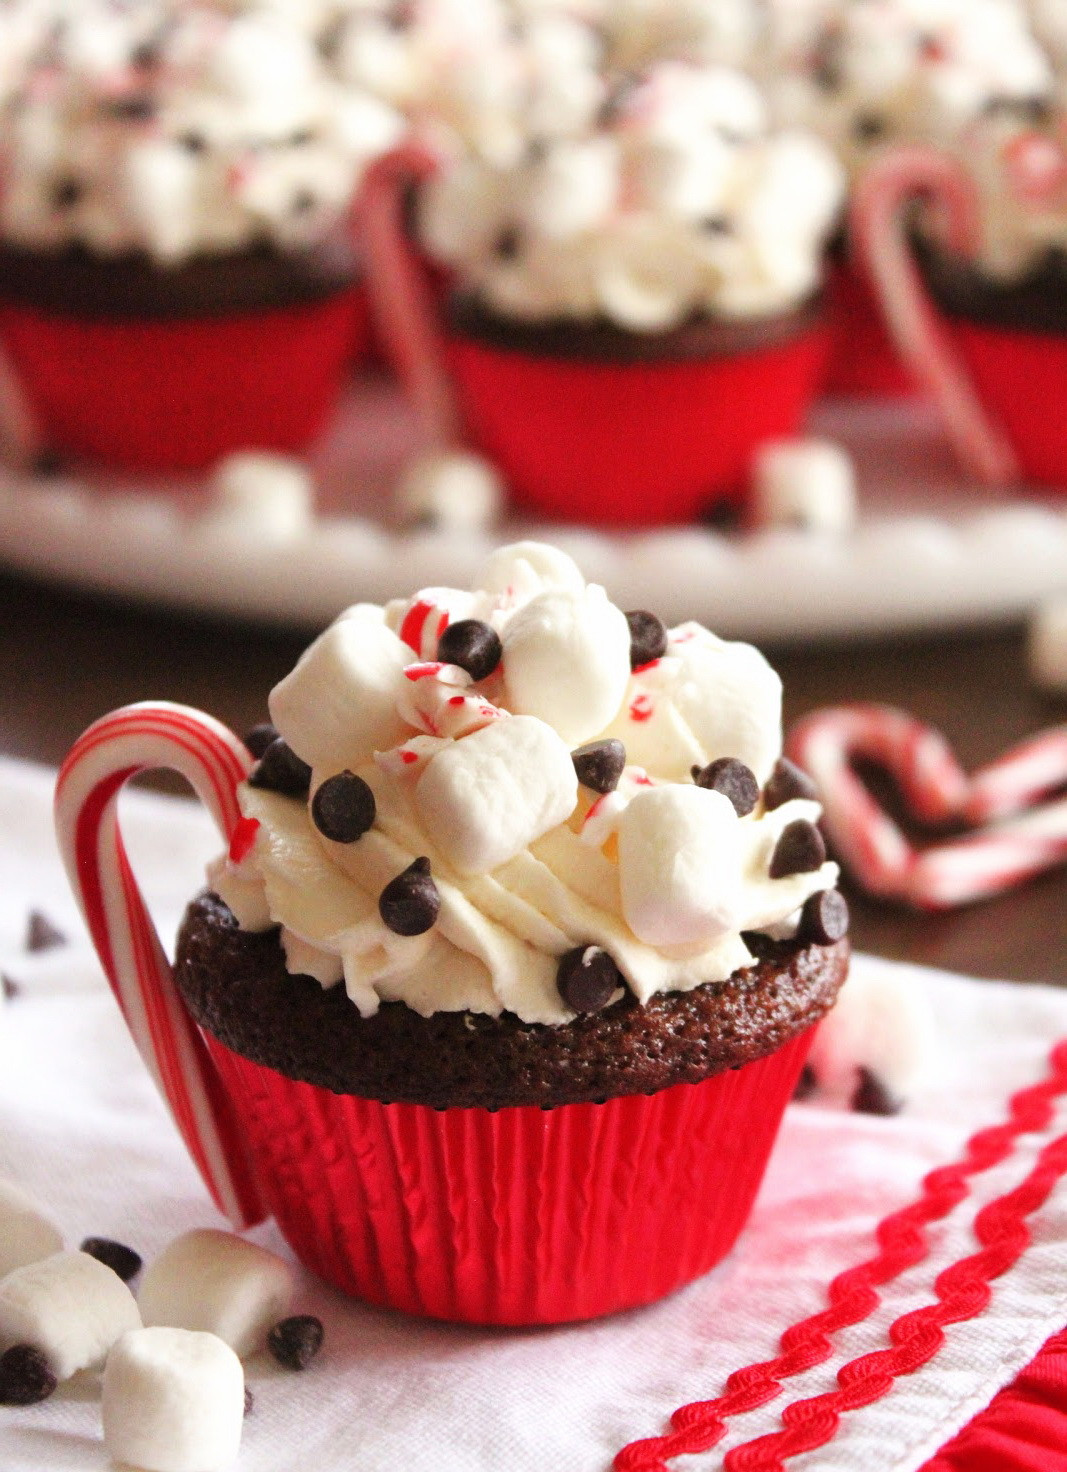 Chocolate Holiday Desserts  Hot Cocoa Chocolate Cupcake – Christmas Party Dessert Food